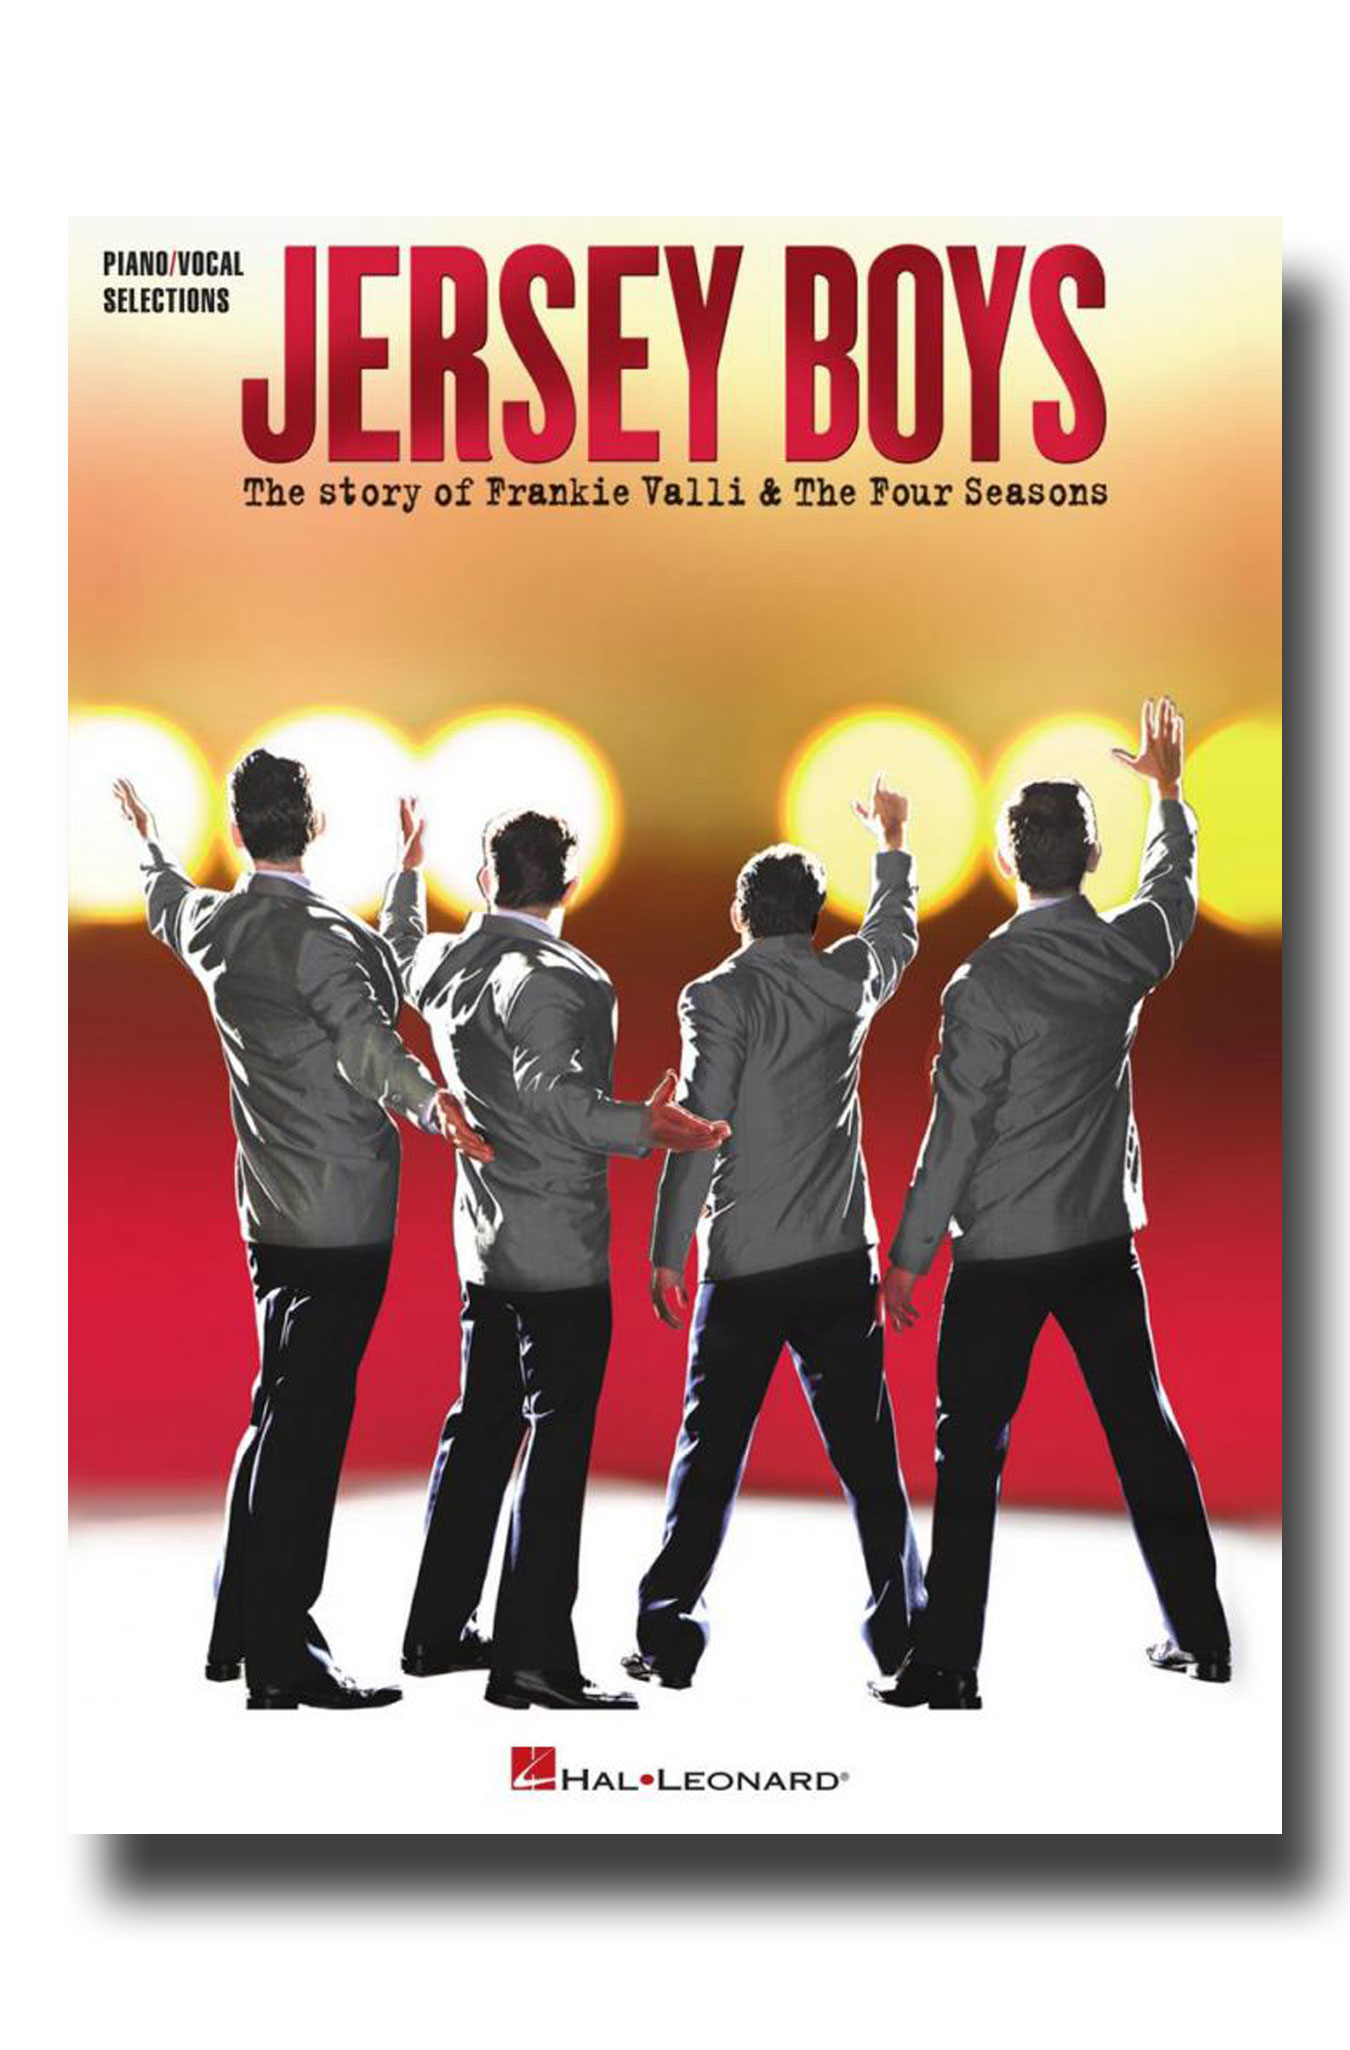 Jersey Boys - VOCAL SELECTION - The Story of Frankie Valli & The Four Seasons